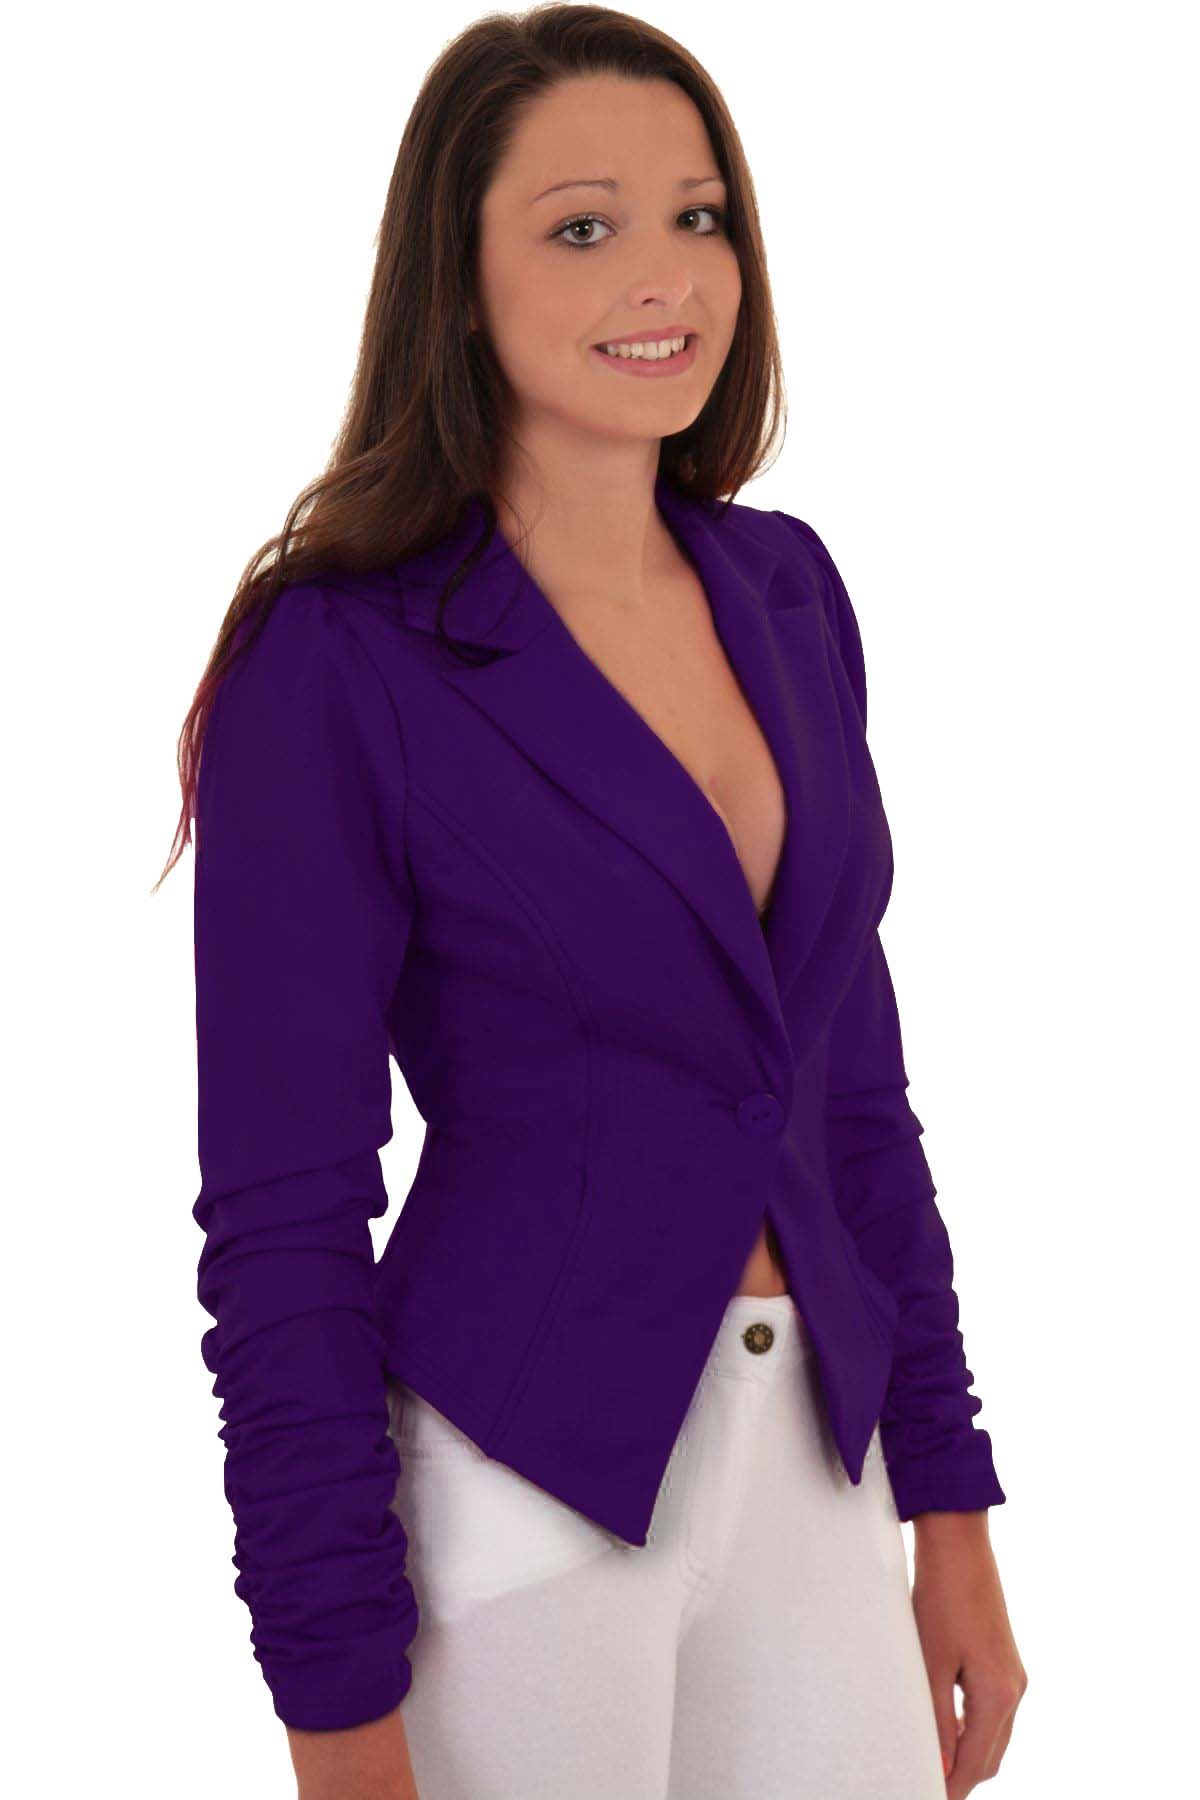 Women's blazers are back with more class and style than ever! Show the world who you really are in one of our beautiful, well-made blazer. Different Cuts for Different Occasions: Create a whole new fashion silhouette with our beautiful selection of single breasted or double-breasted styles. We carry a wide selection of sizes and cuts that are well suited to all types of occasions.